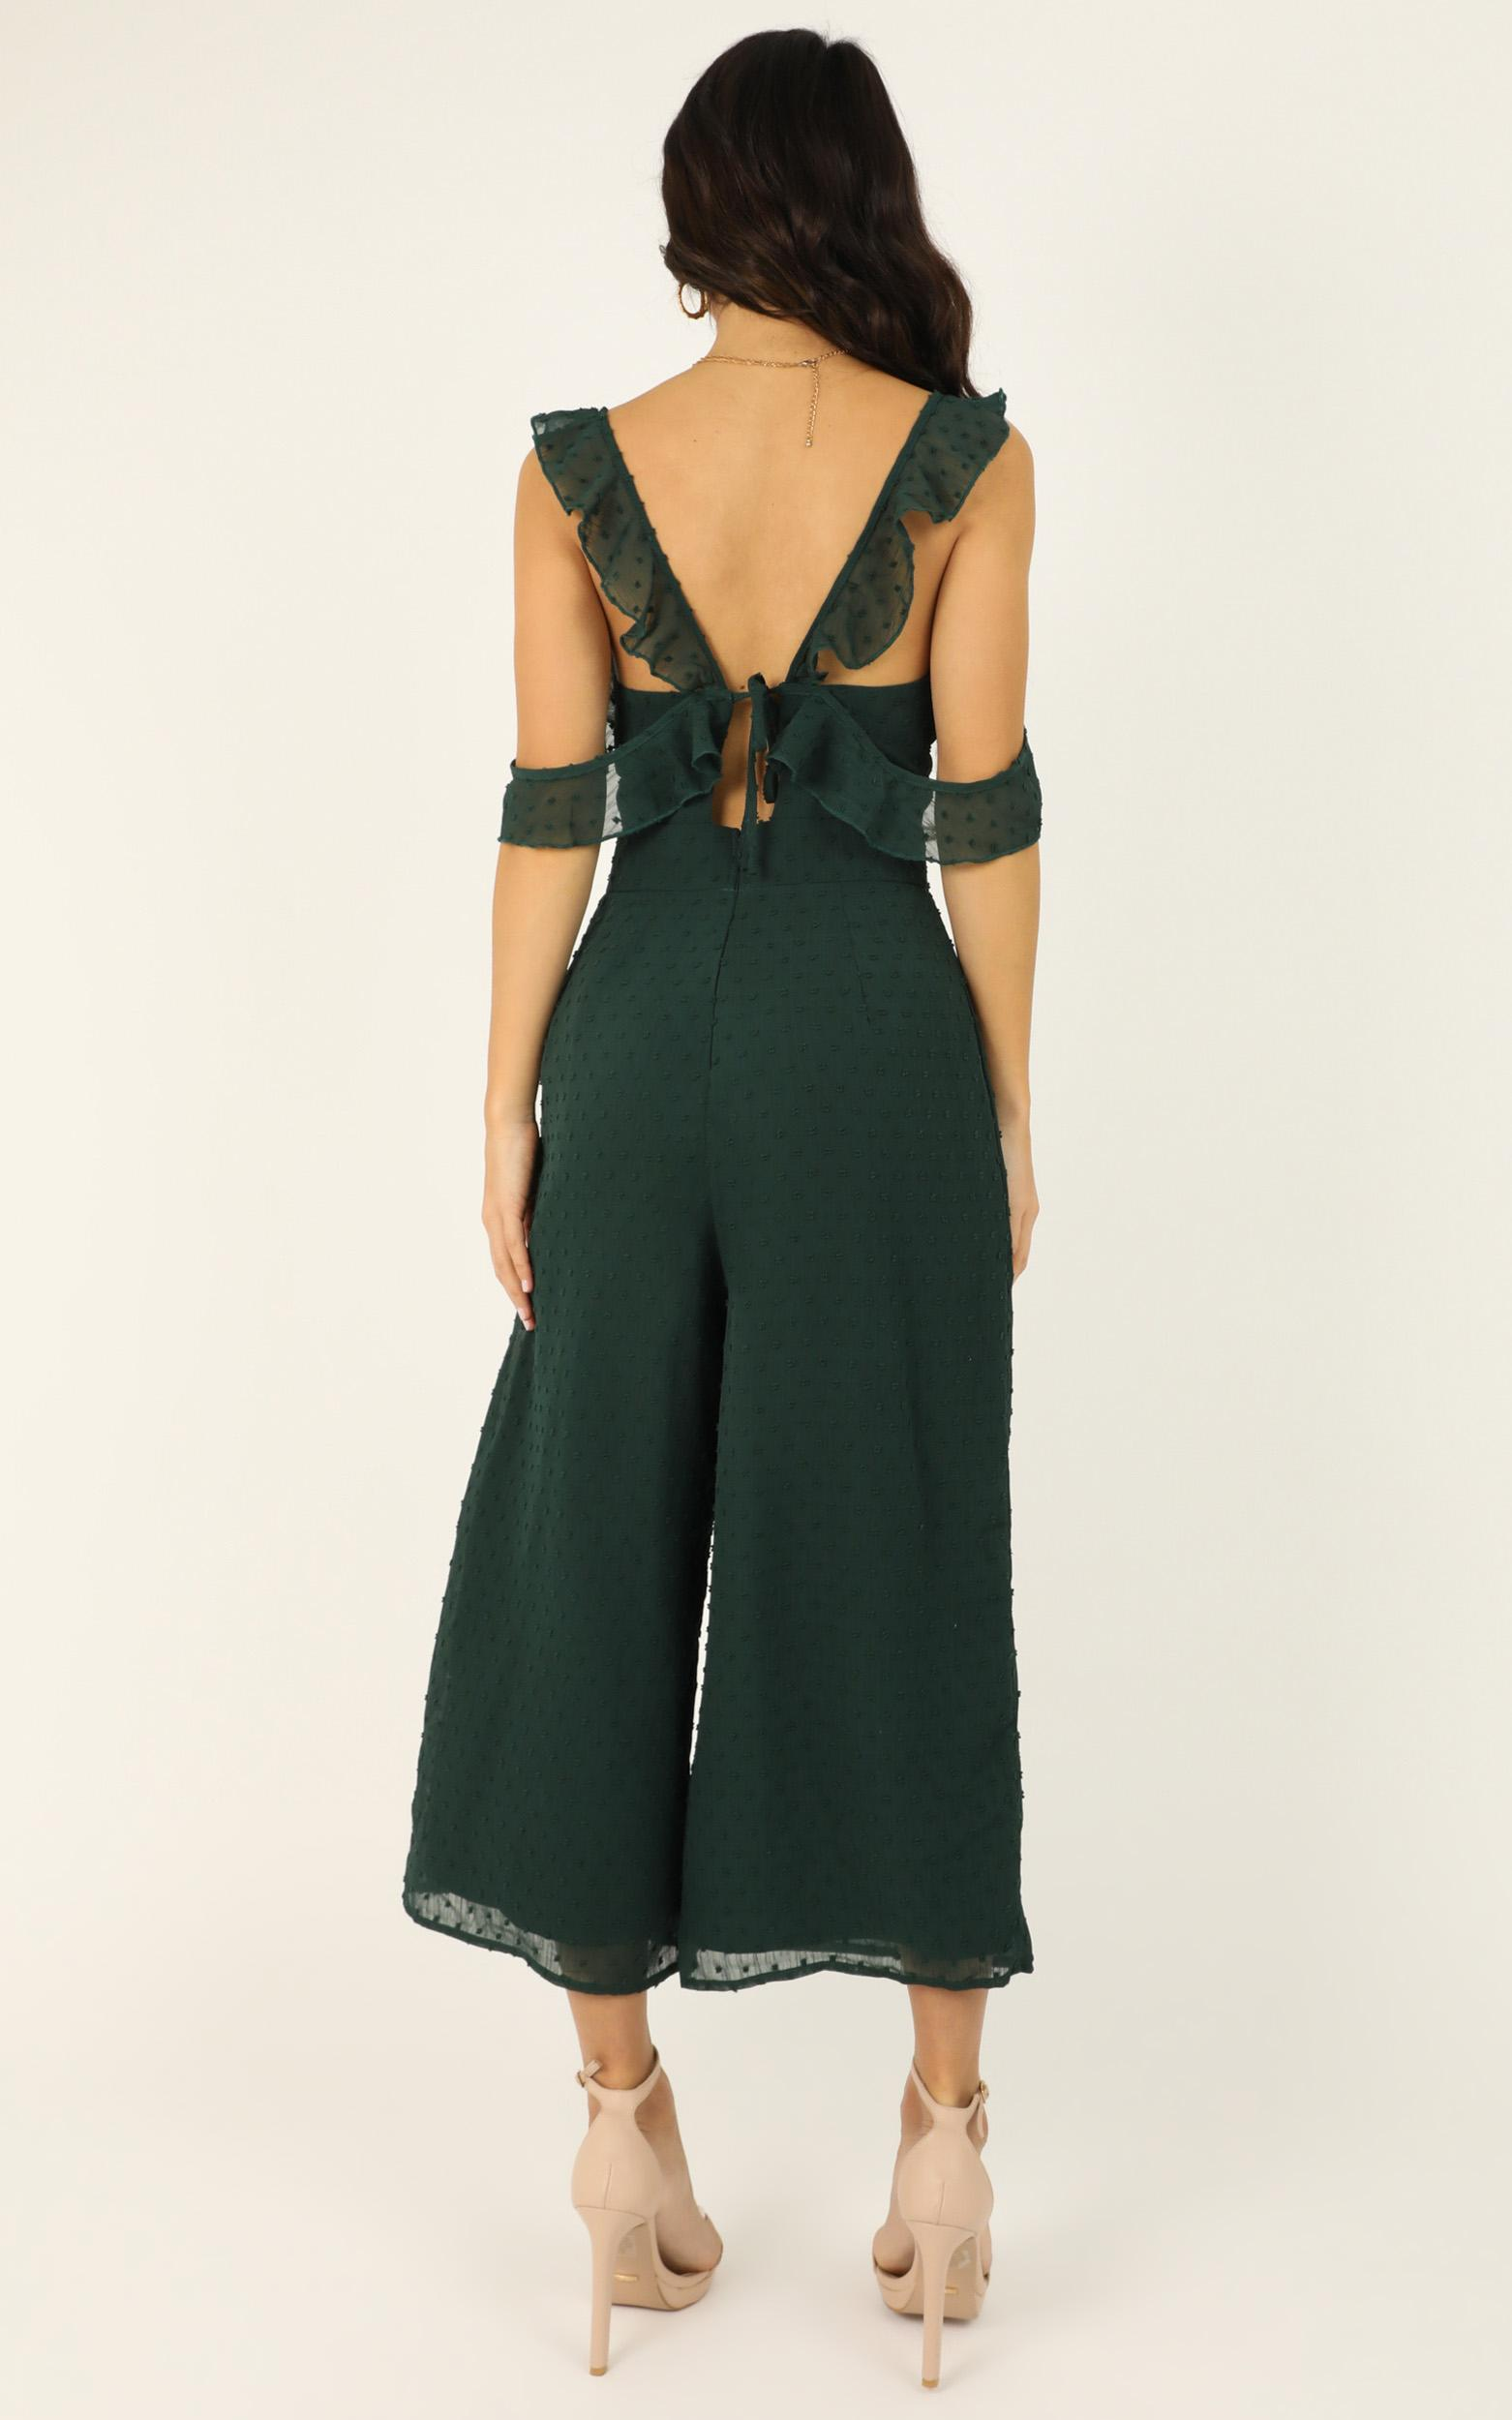 Youre Finally Home Jumpsuit in emerald - 18 (XXXL), Green, hi-res image number null